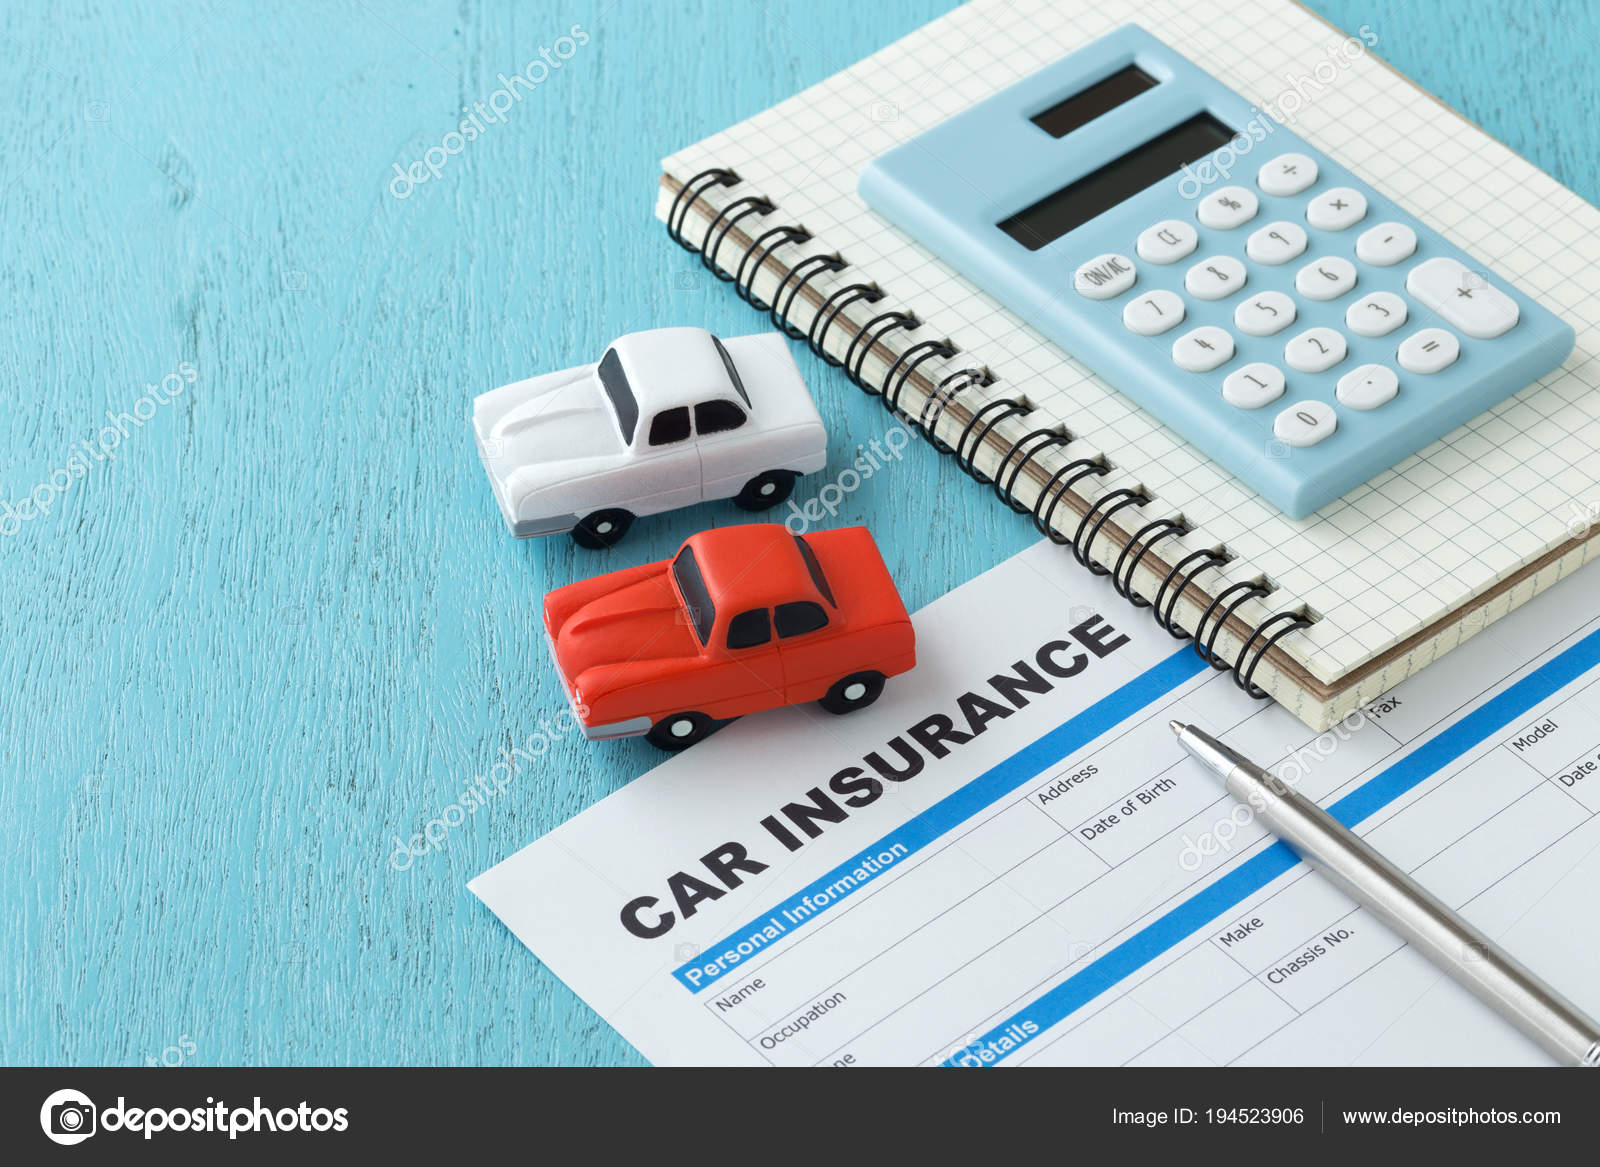 Car Insurance With Calculator On Wooden Background Stock Photo